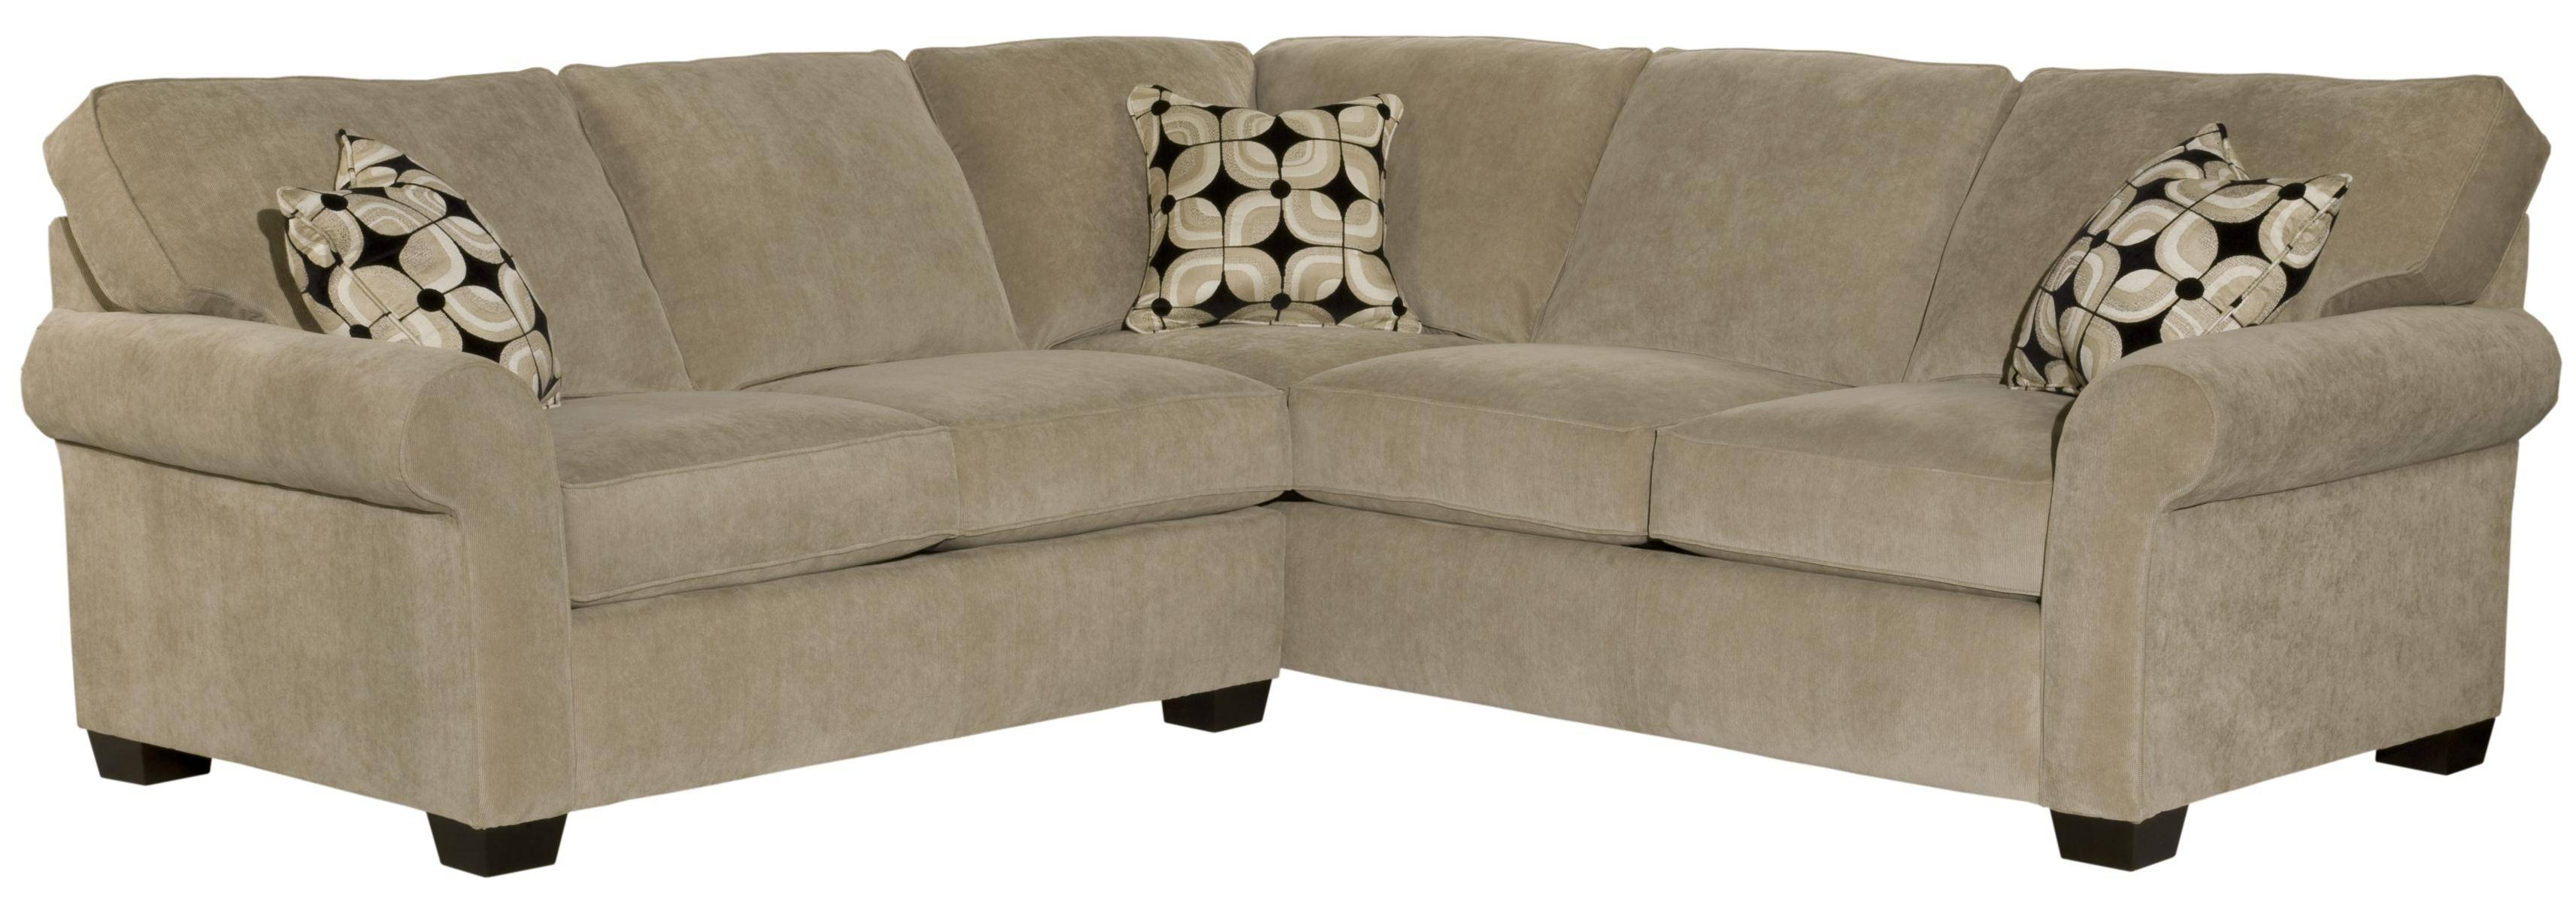 Broyhill Sofas And Sectionals | Sofas Decoration intended for Broyhill Sectional Sofas (Image 18 of 30)